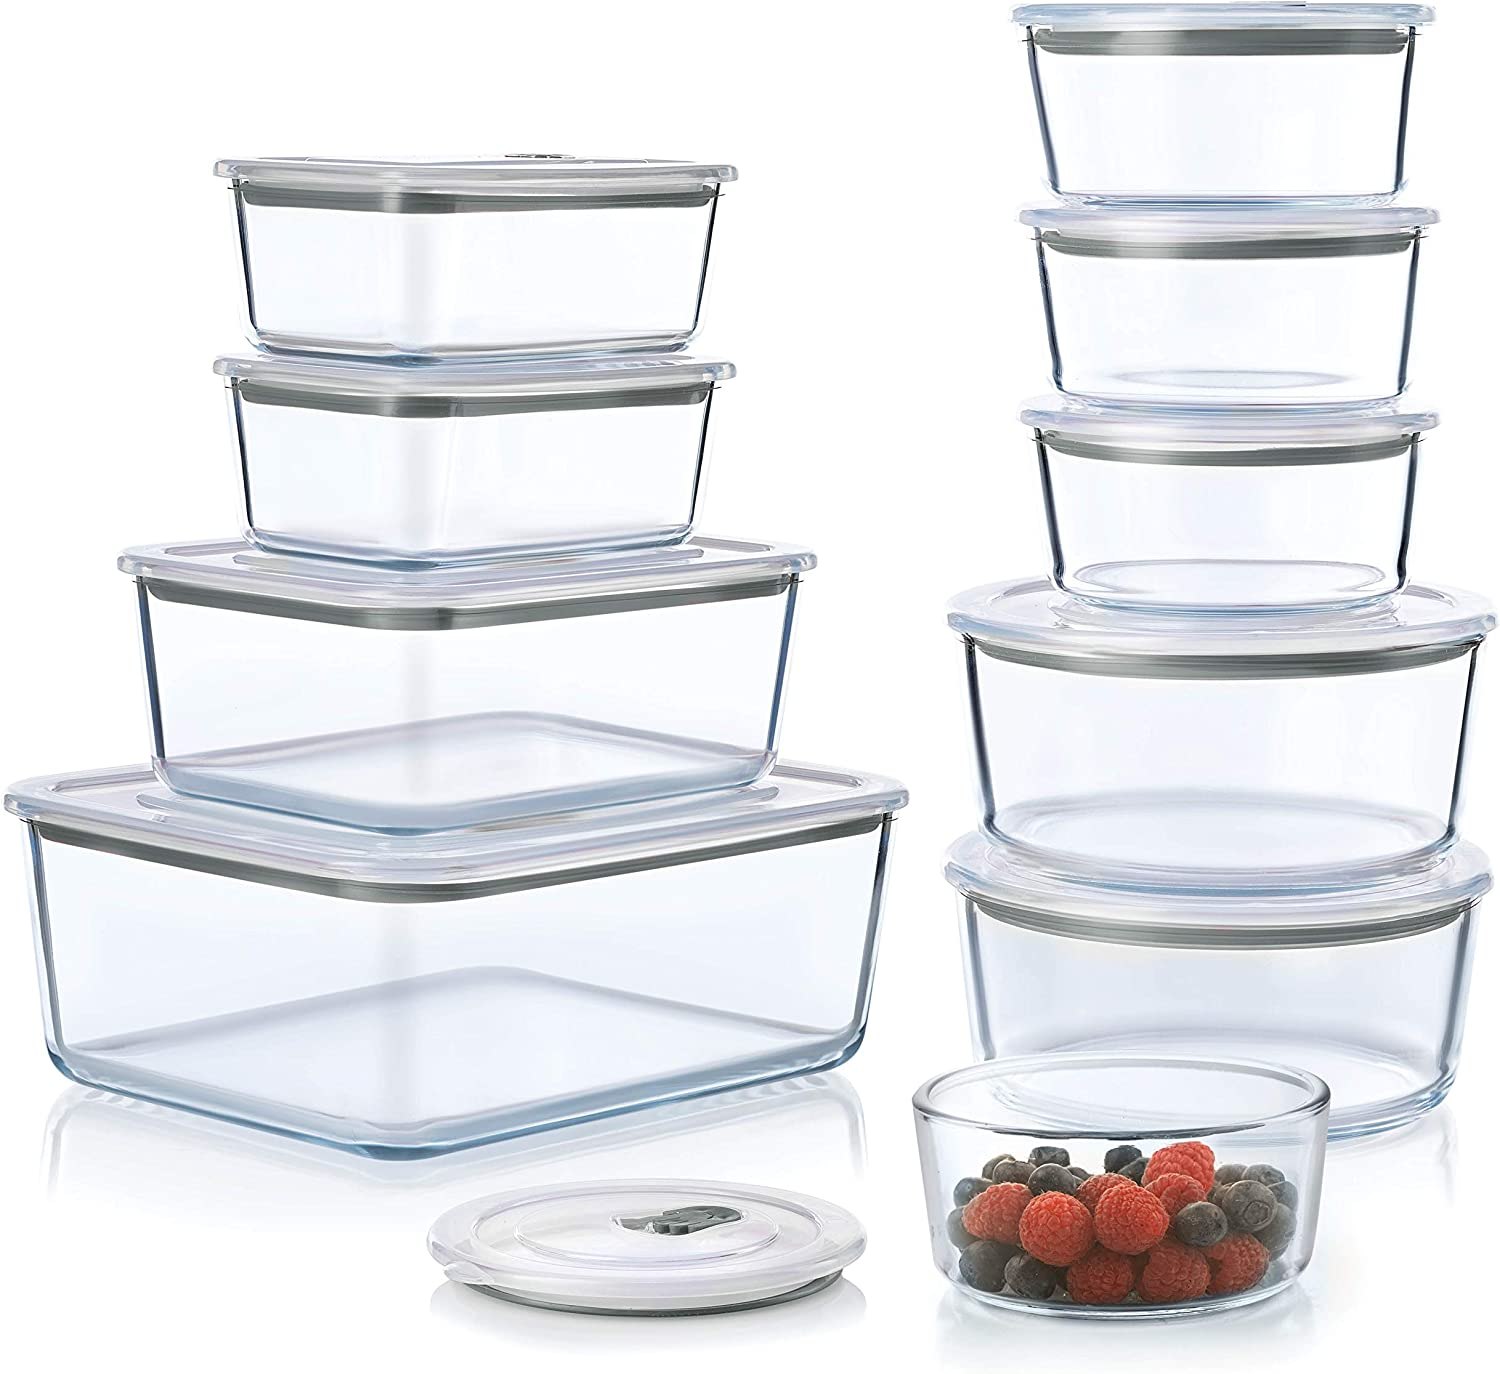 20-Piece Superior Glass Food Storage Containers Set - BPA-free Push in lids -100% Leakproof Glass Meal Prep Containers - Glass storage containers - Great On-the-Go, Freezer & Oven Safe Food Containers